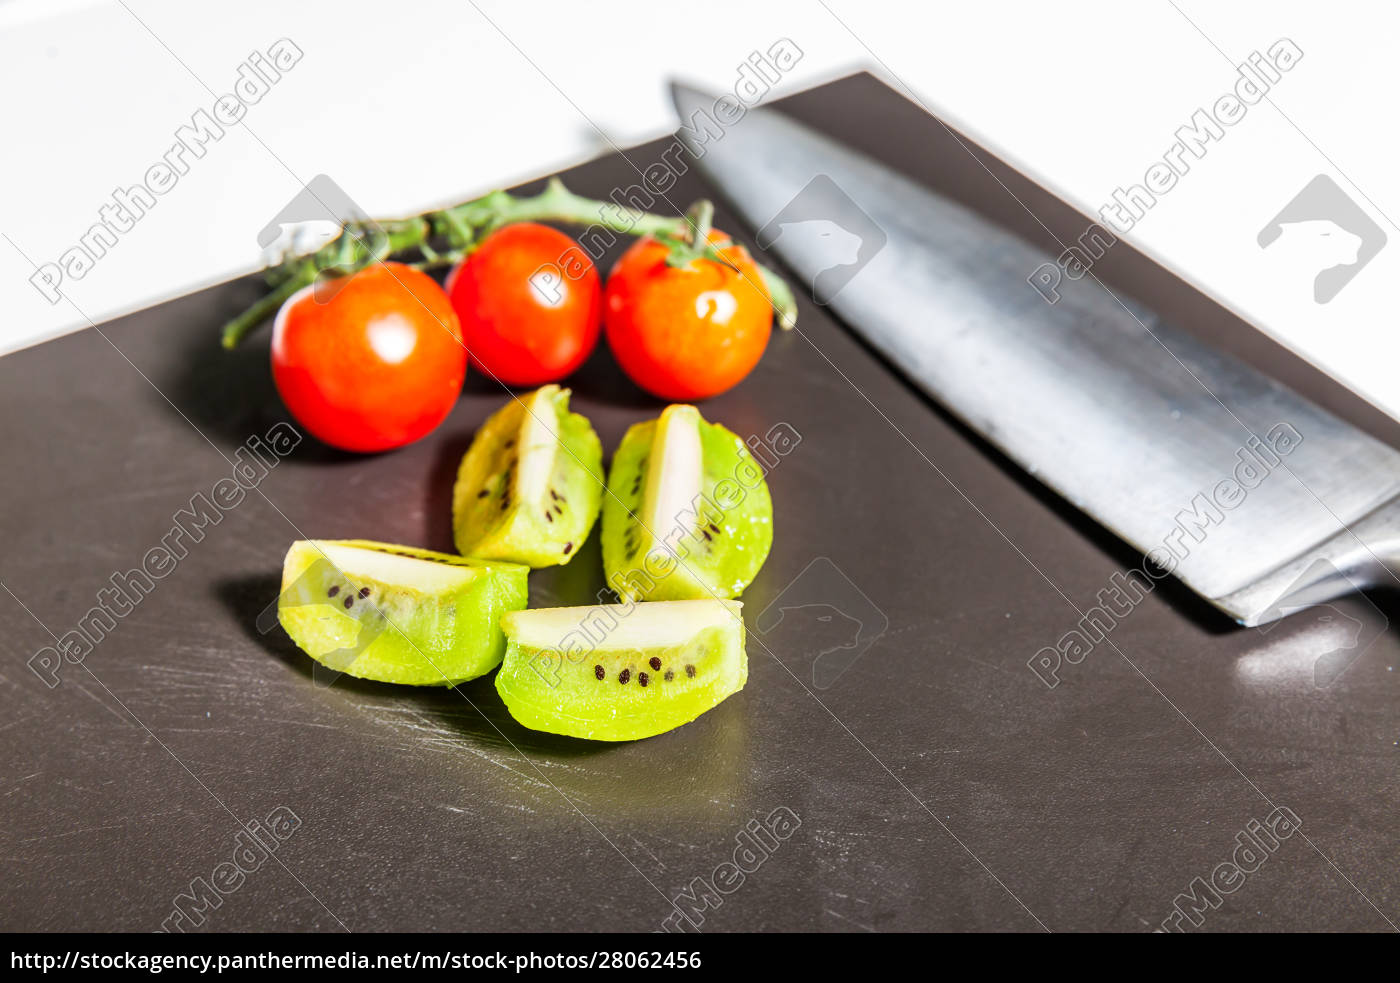 cooking, utensils, and, vegetables - 28062456